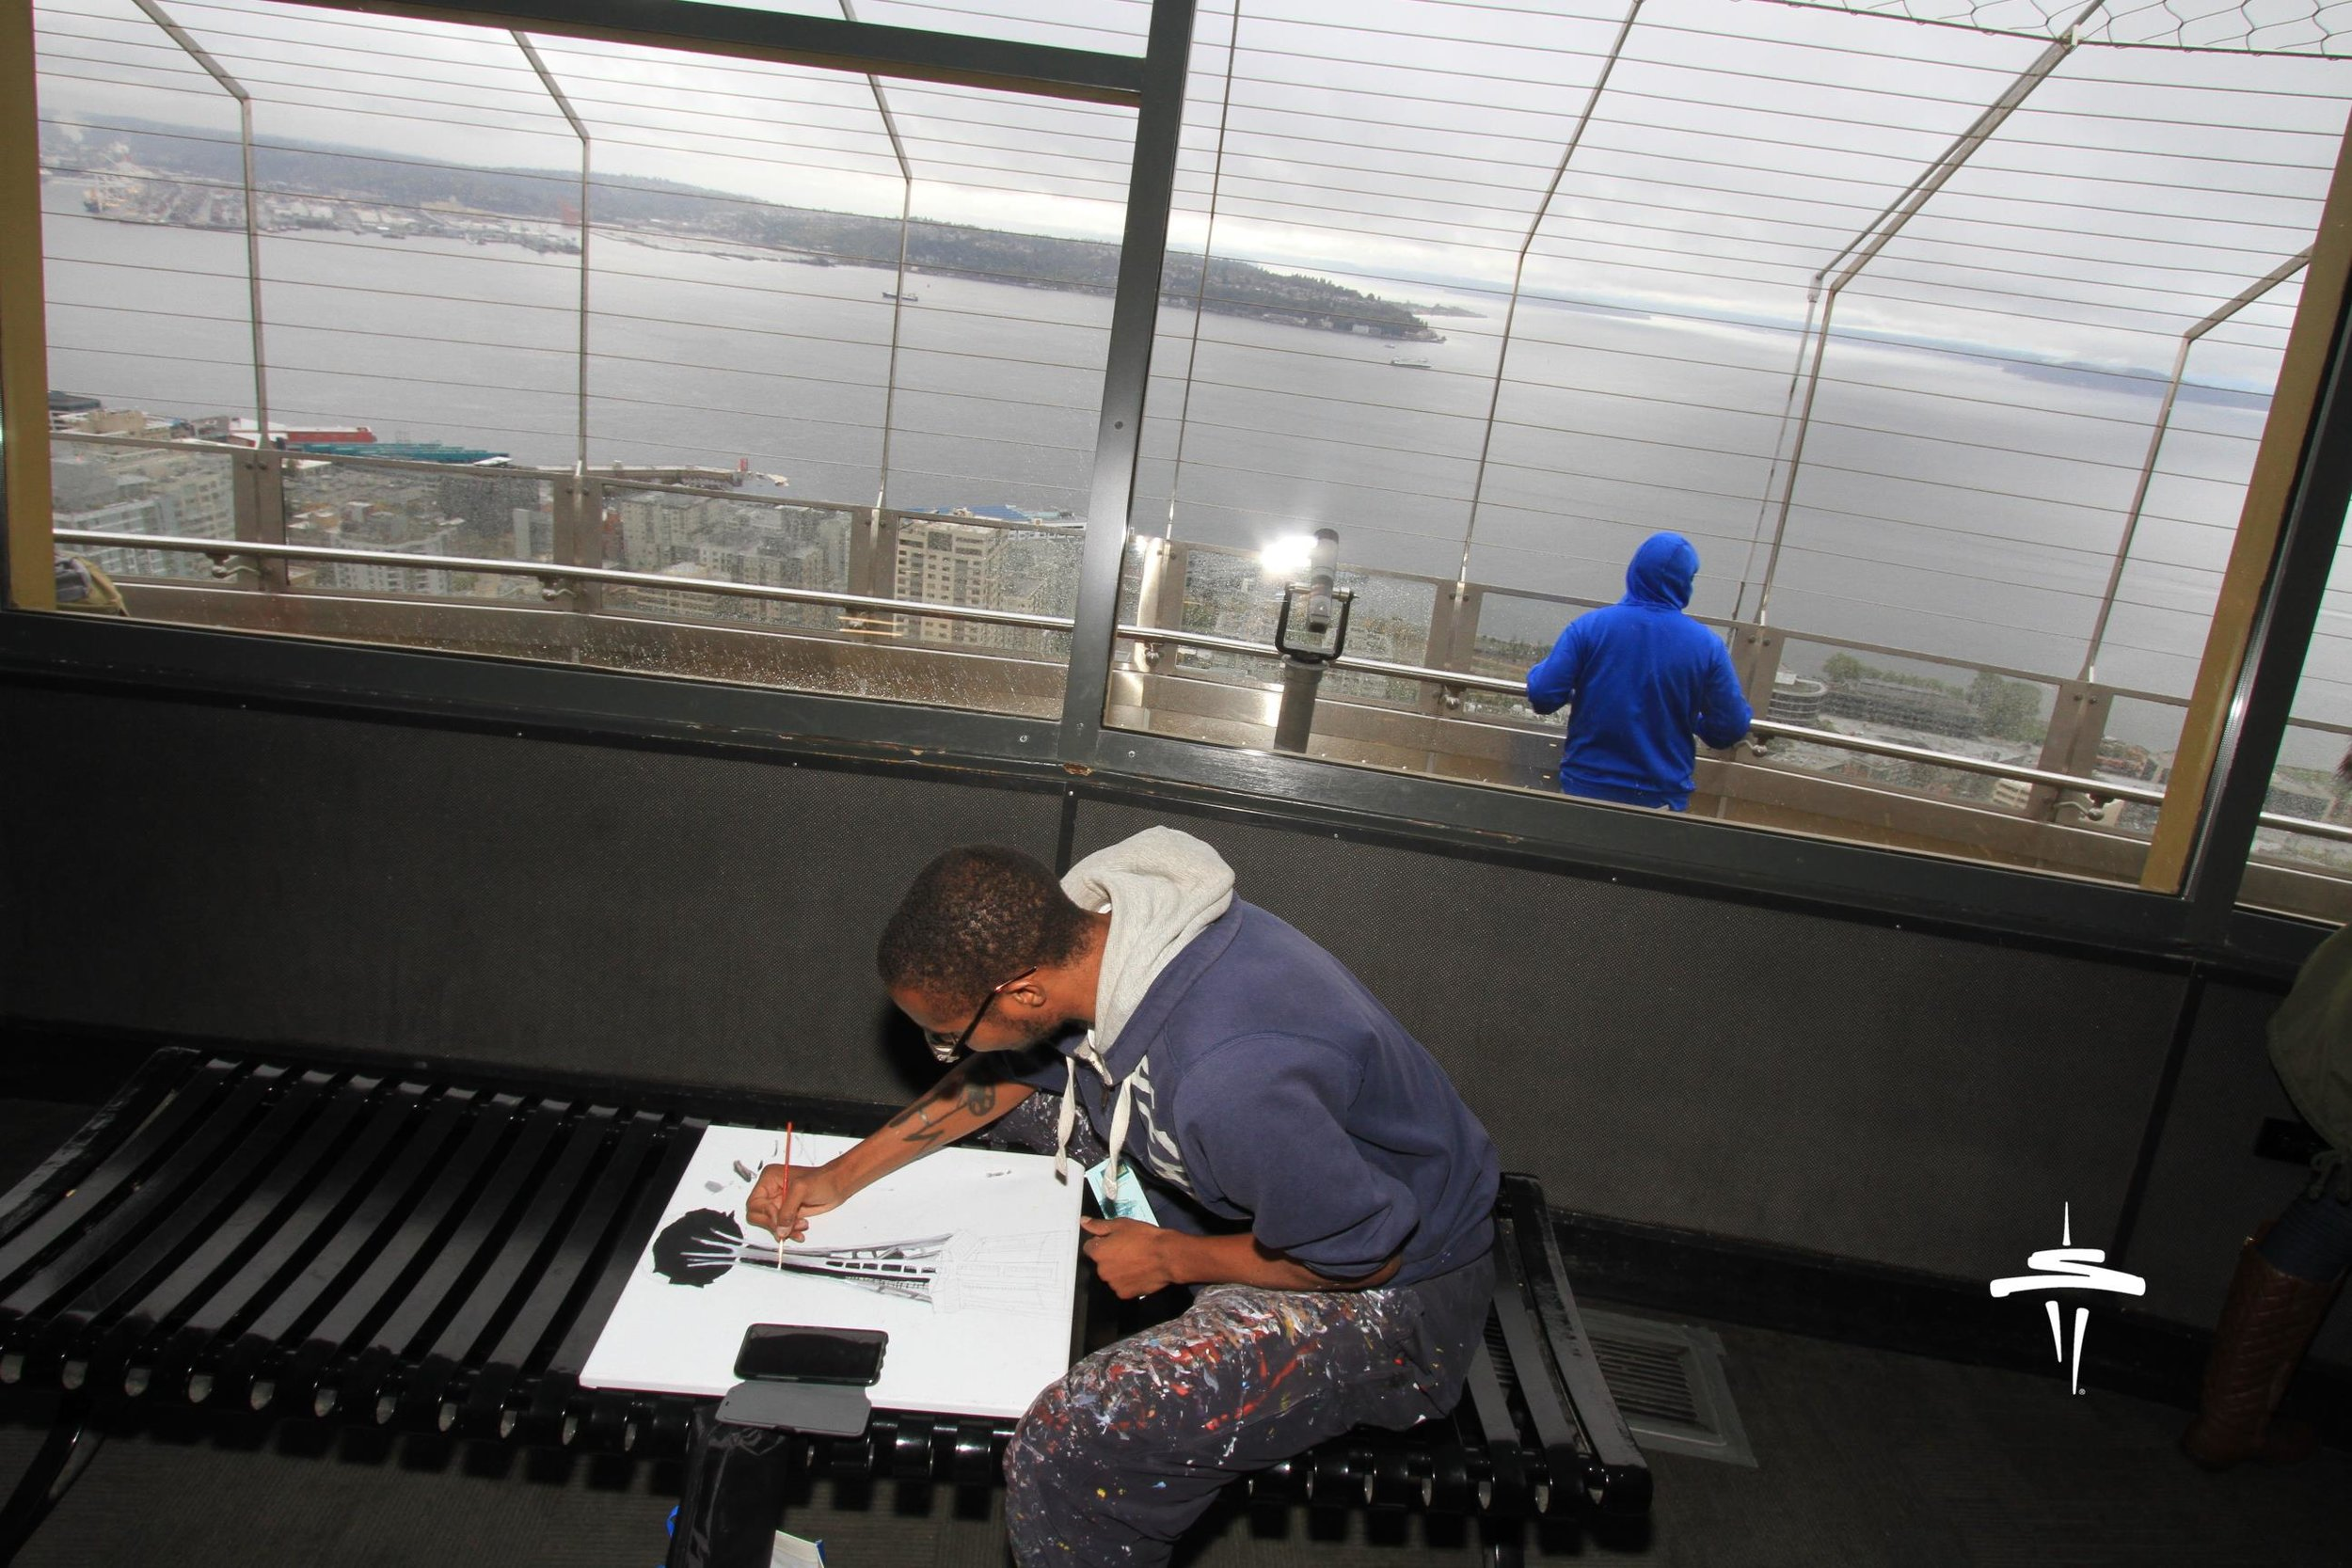 My professional photography photoshoot of the live painting Space Needle I'm doing in the picture that a photographer employee took of me while working.